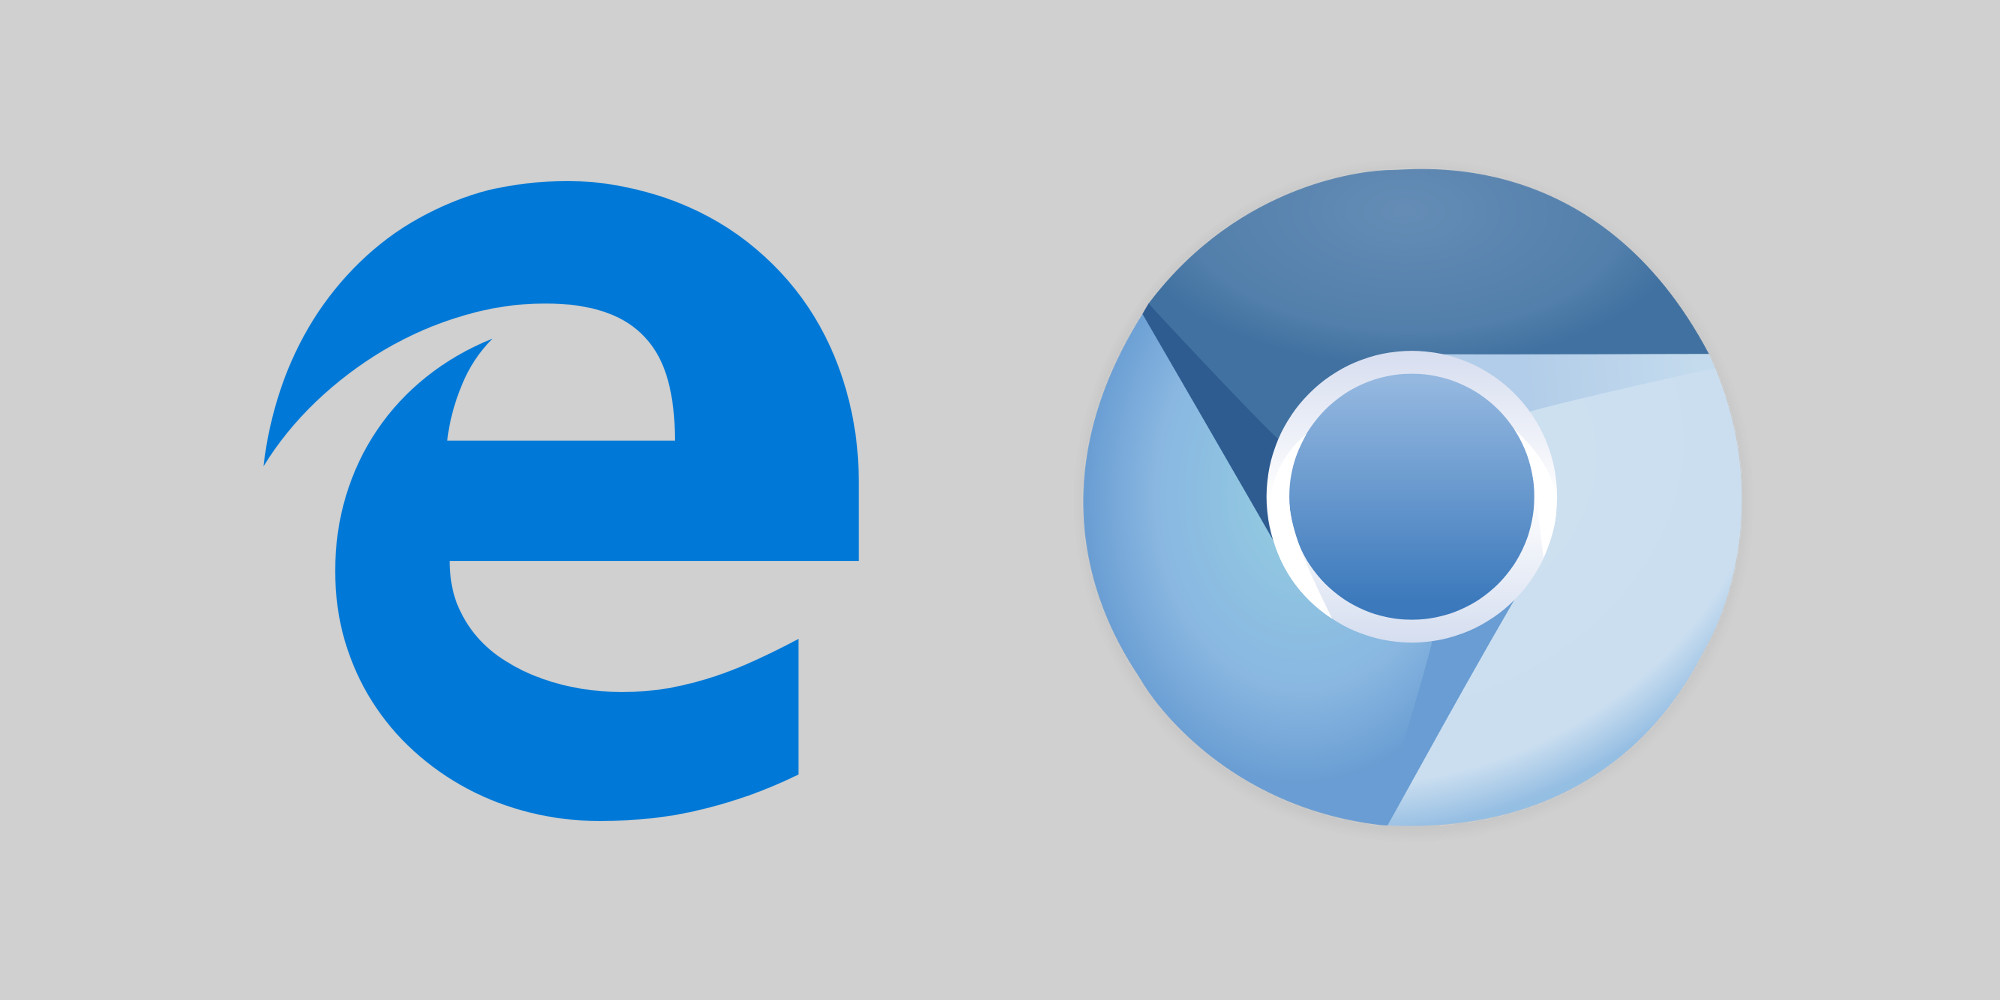 New screenshots, details leak of Microsoft's Chromium-based Edge [Gallery]